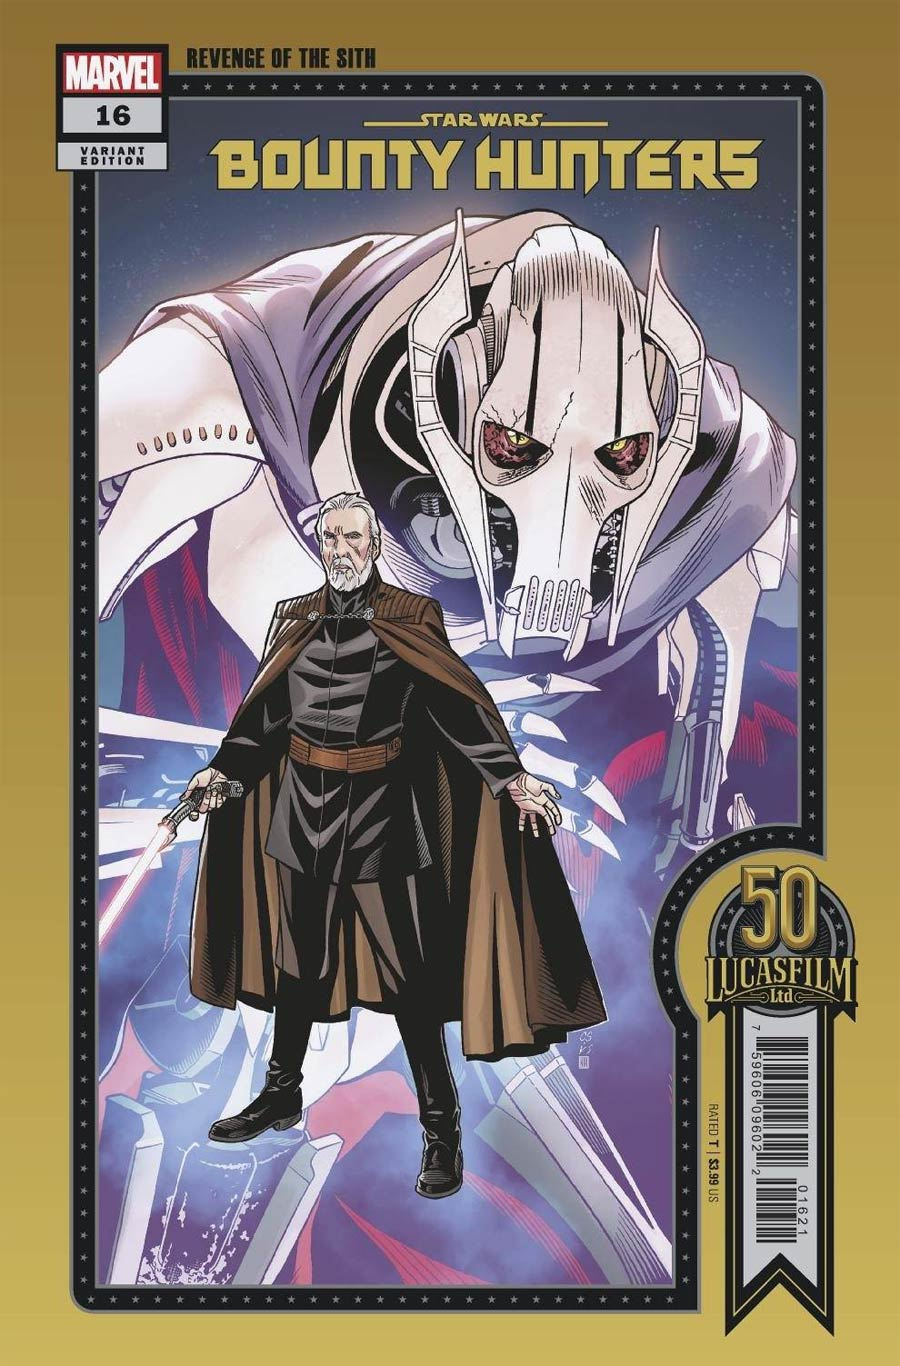 Star Wars Bounty Hunters #16 Cover C Variant Chris Sprouse LucasFilm 50th Anniversary Cover (War Of The Bounty Hunters Tie-In)